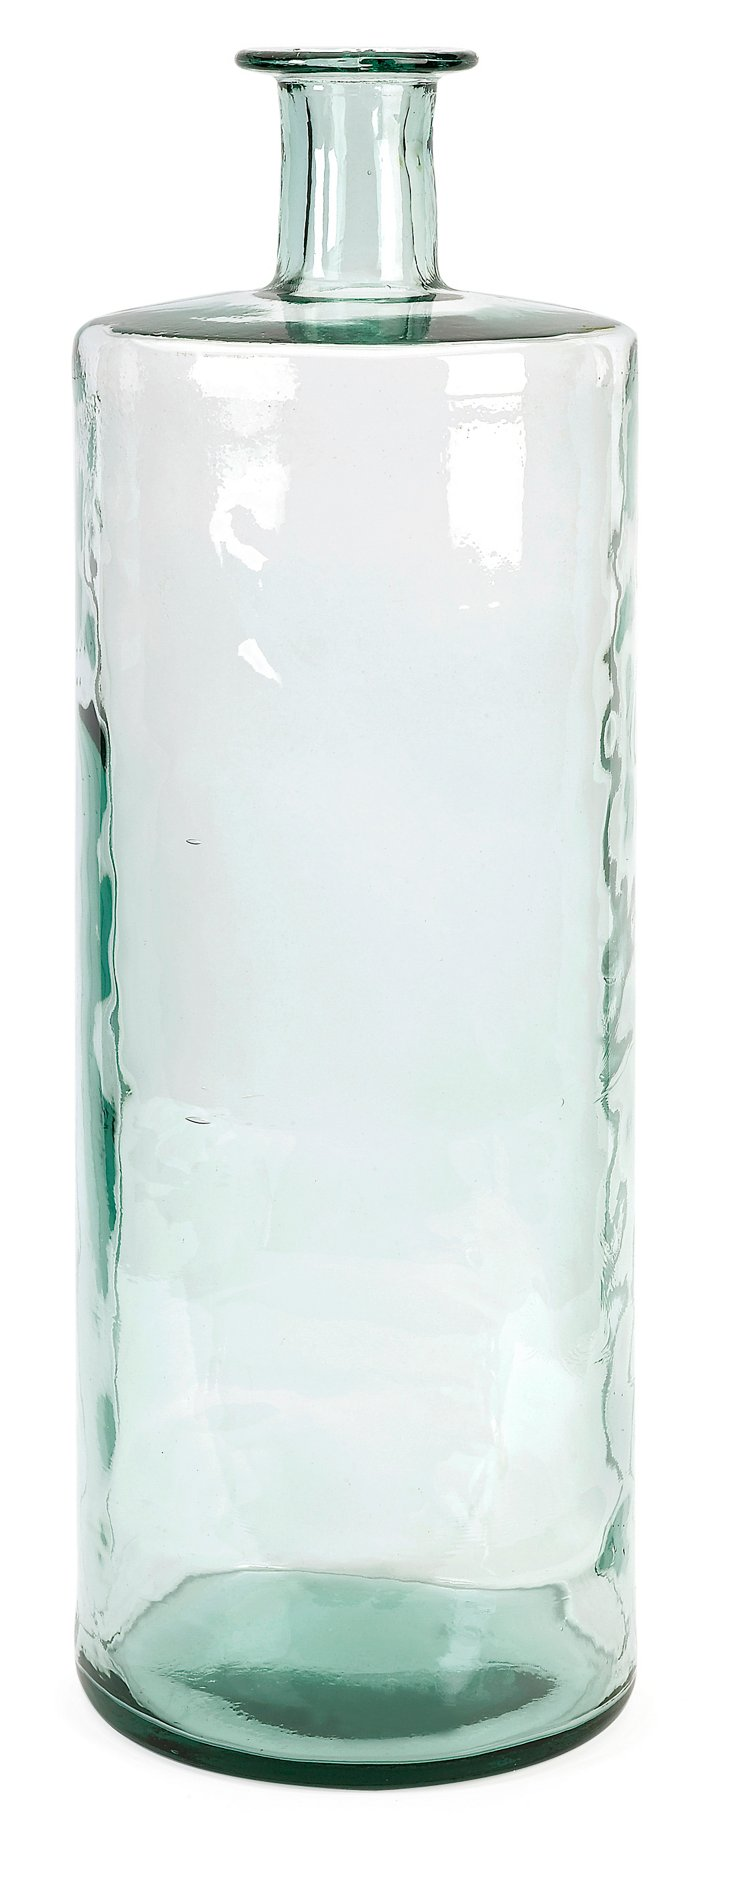 "30"" Recycled Glass Vase, Blue"